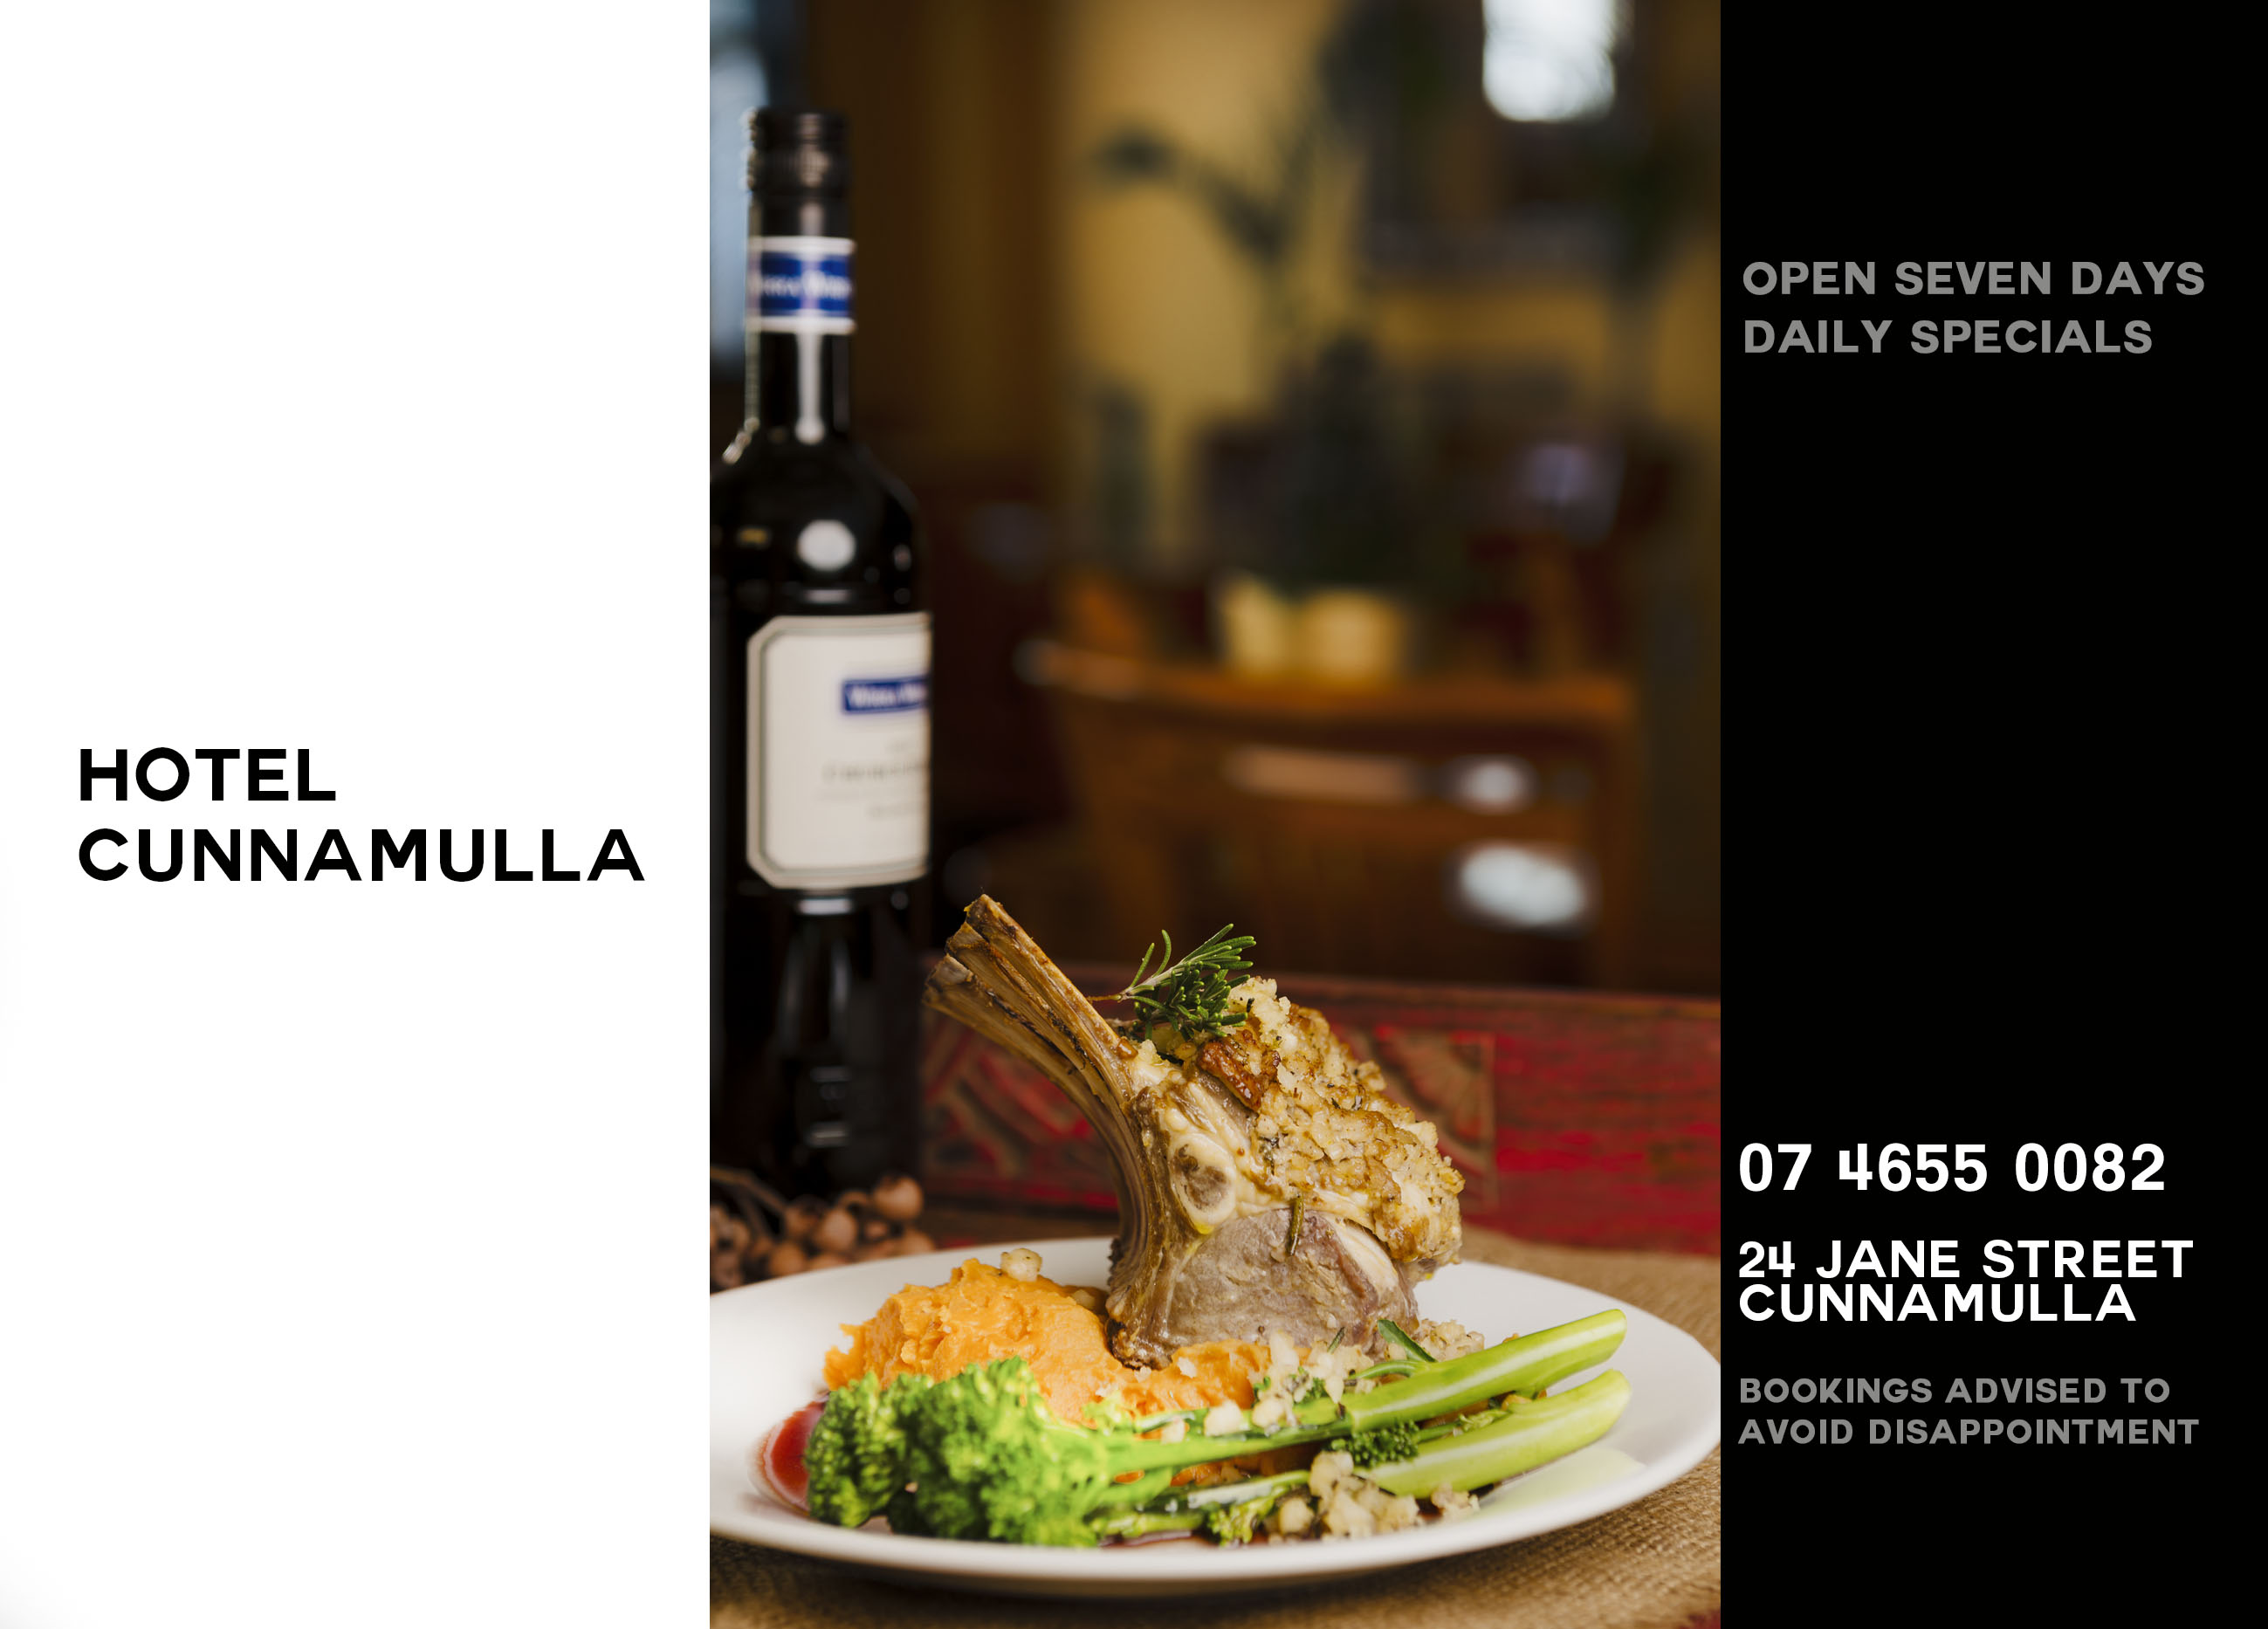 Food from the farm, not a processed factory - come and sample Cunnamulla's Restaurant and Cafe classic menu.